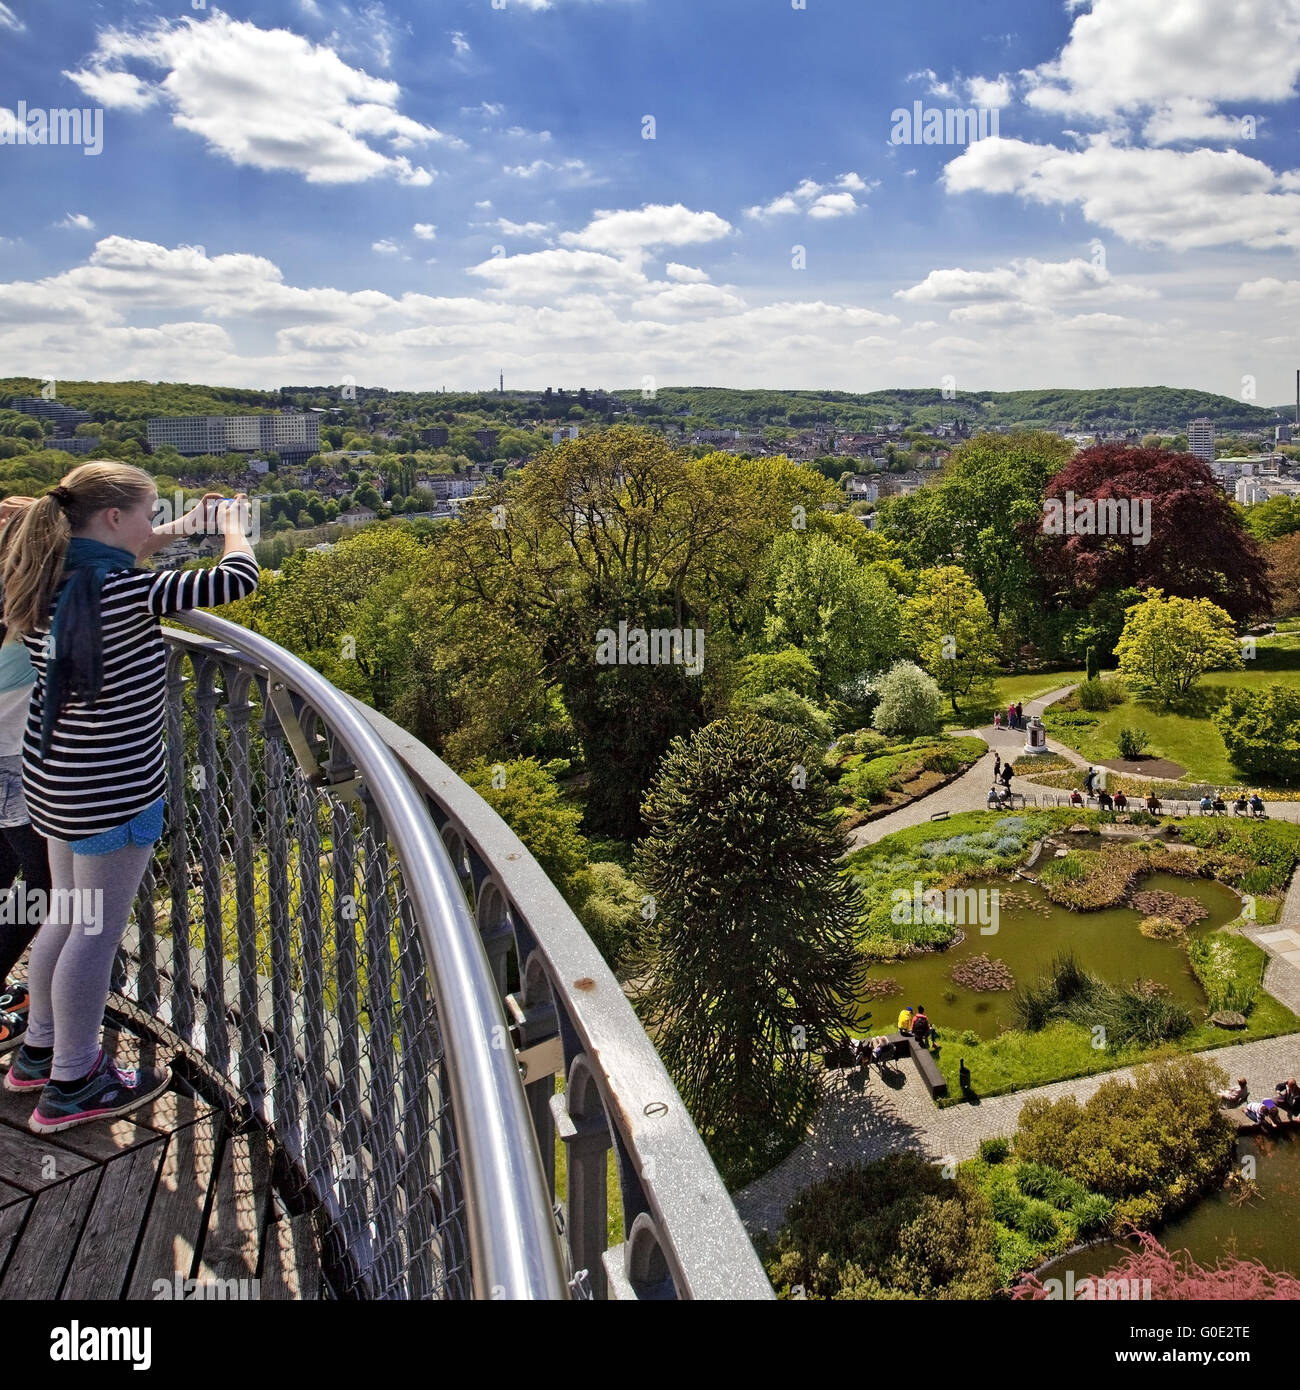 girl takes a photo of the Elisen Tower, Wuppertal - Stock Image